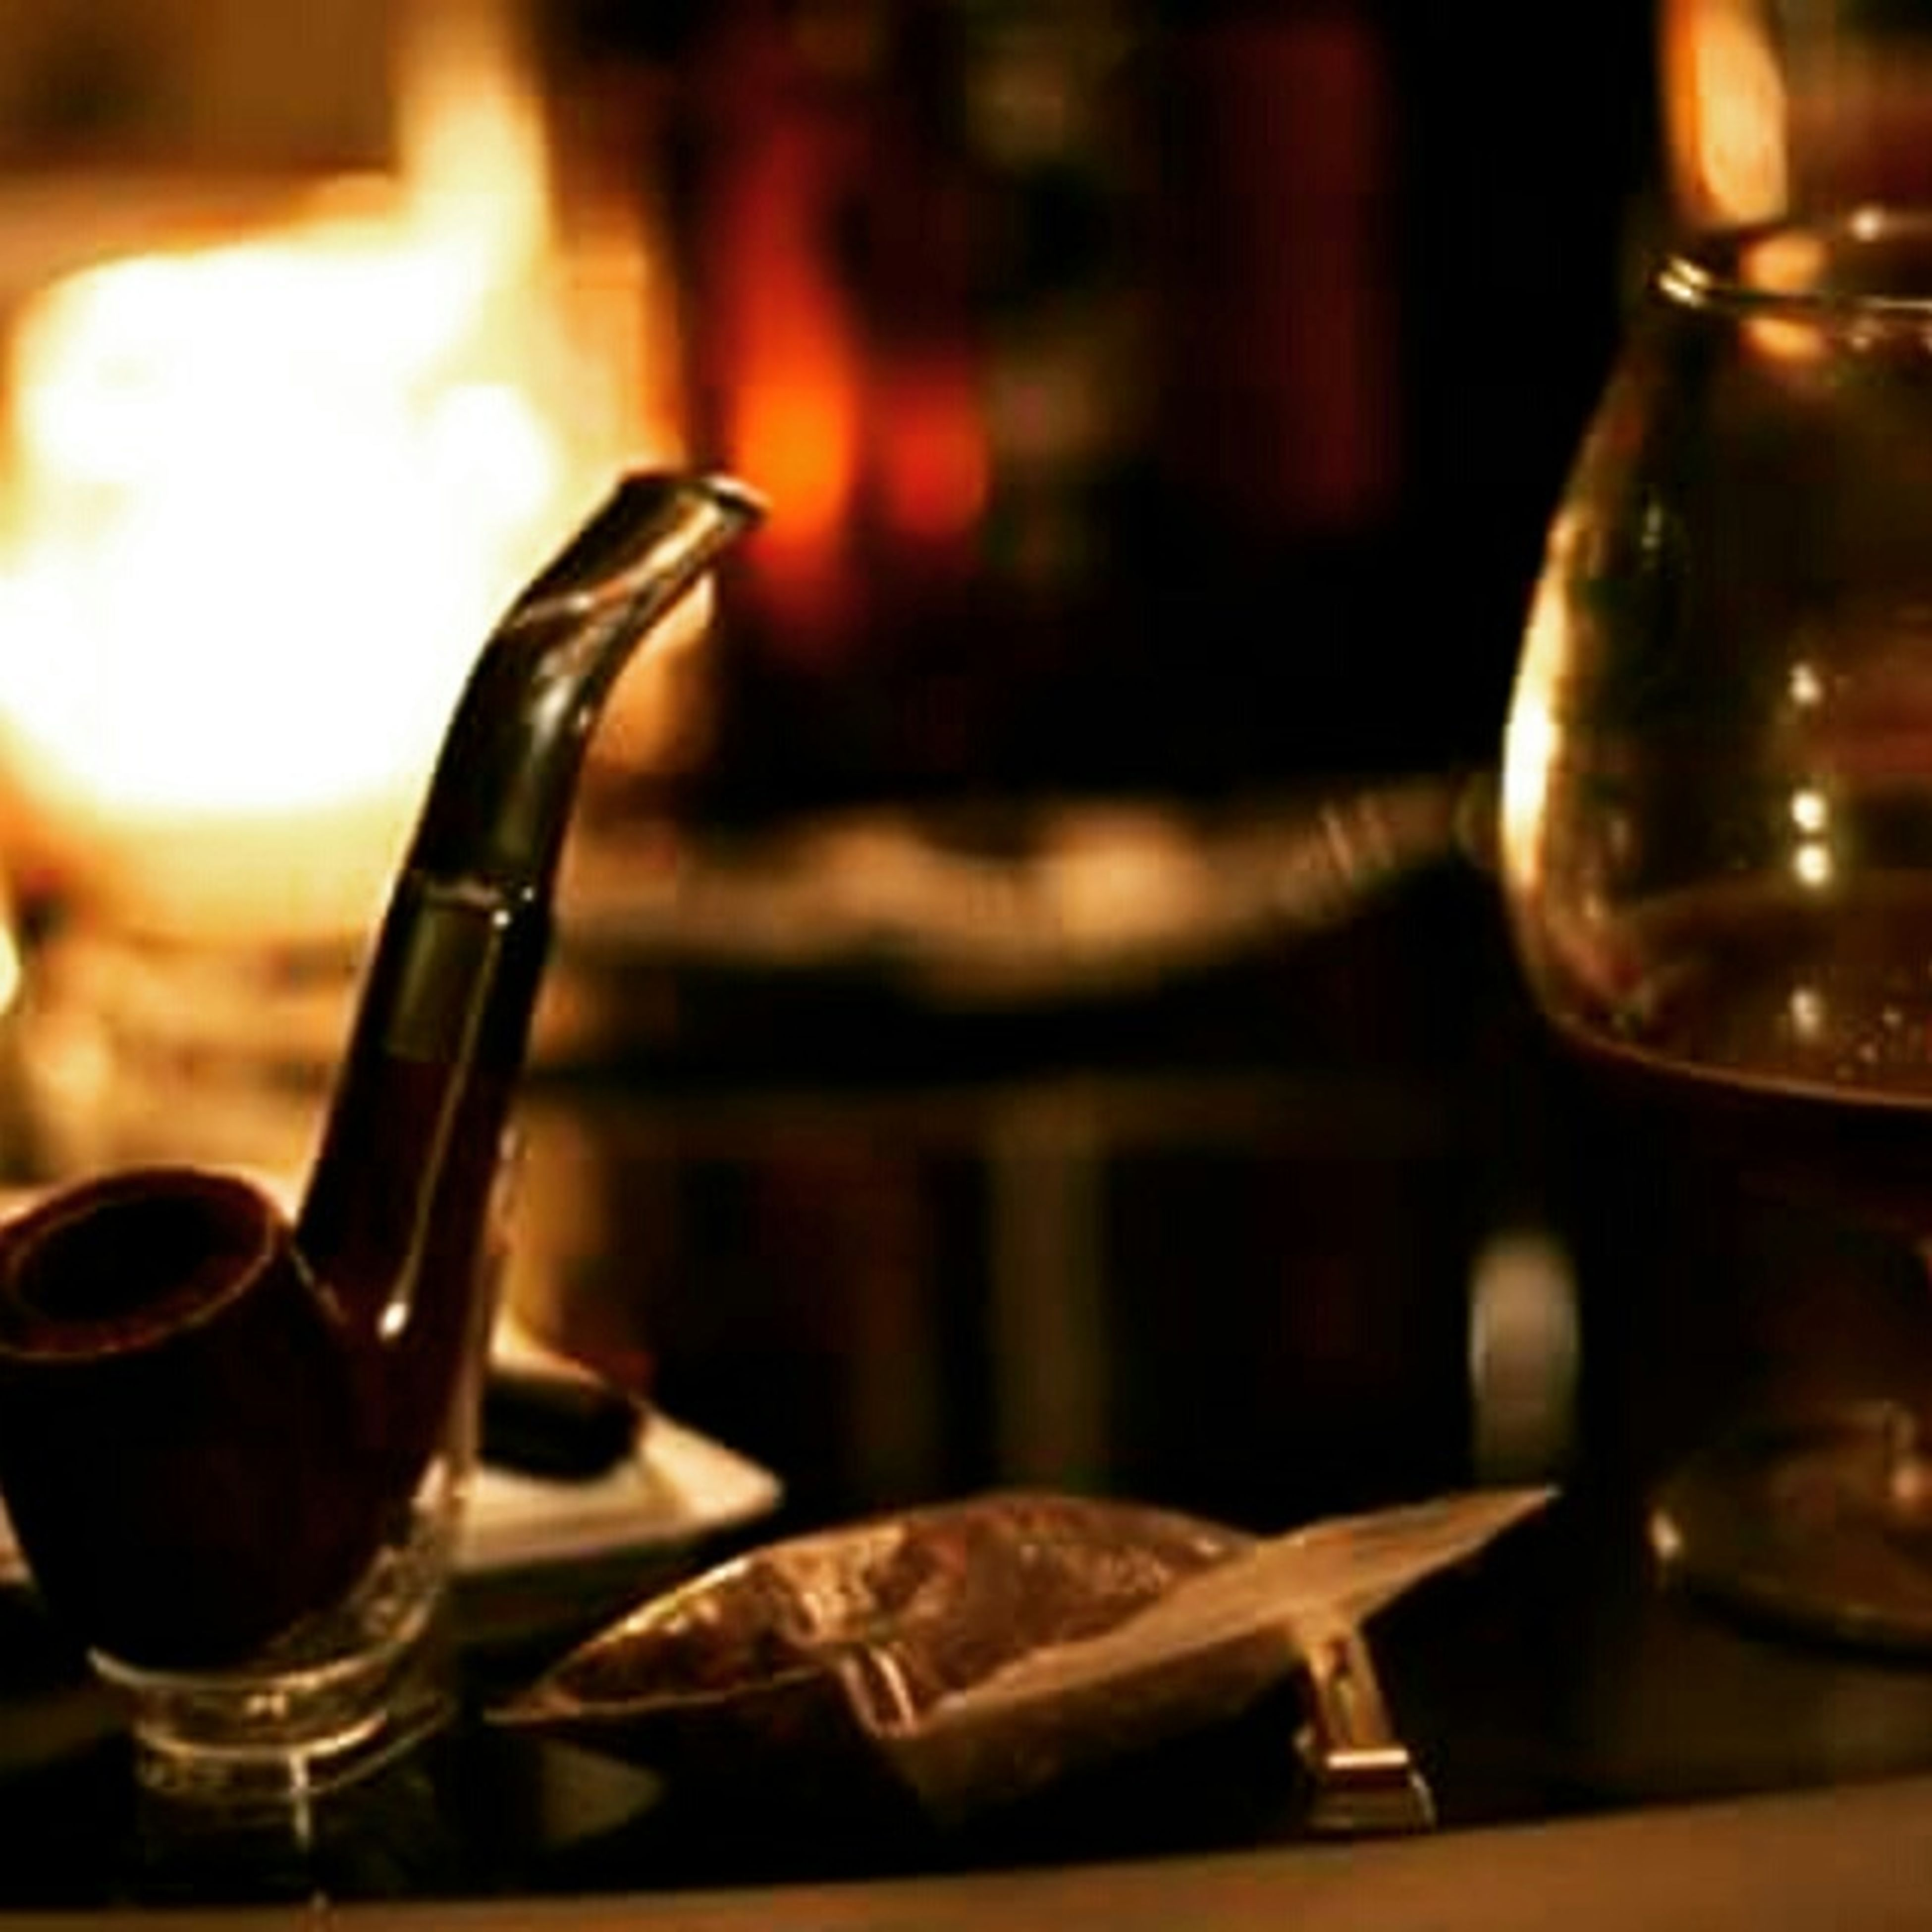 Red Wine Pipes Tabacco